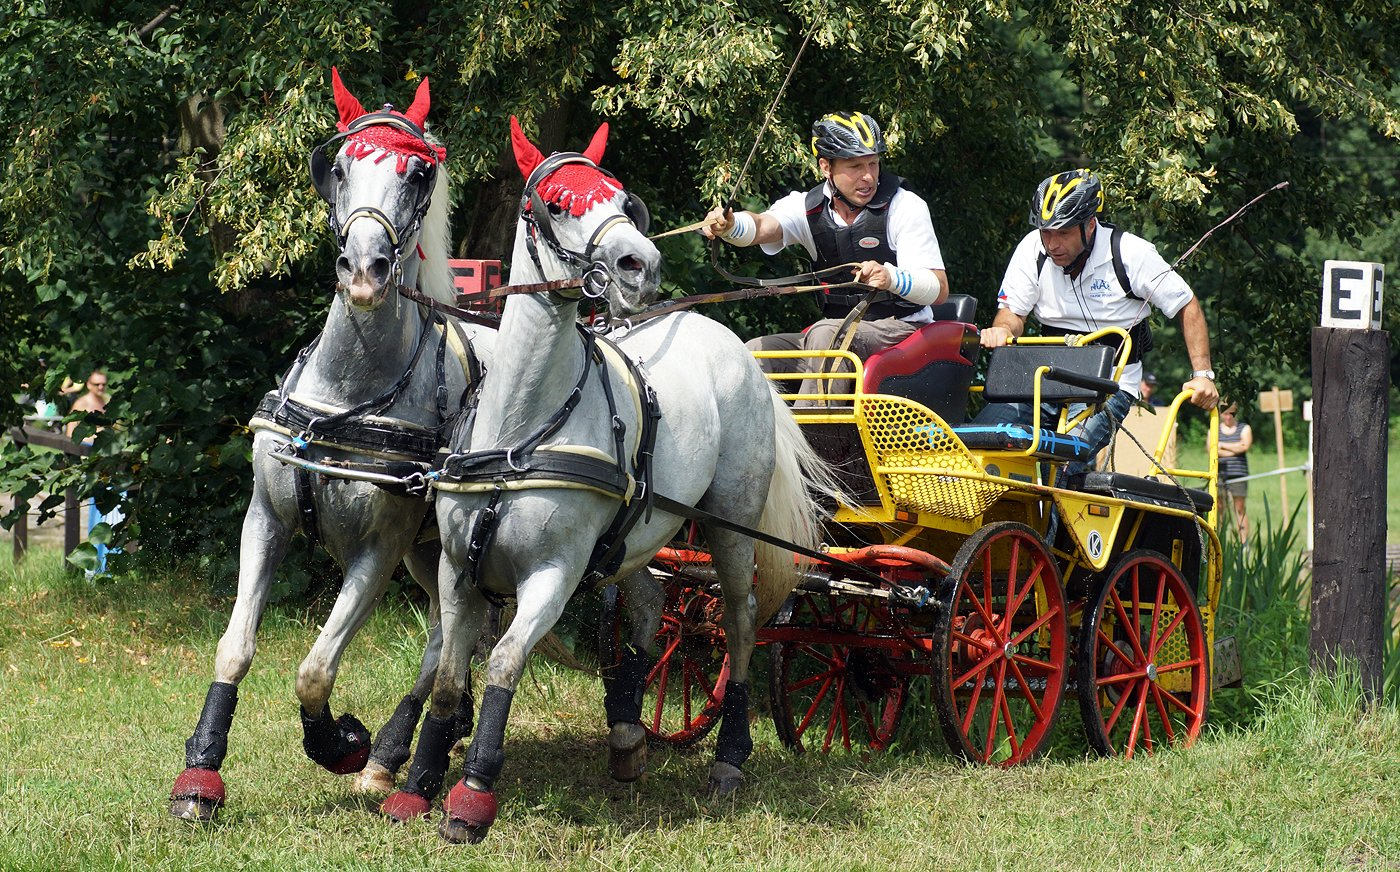 Czech Republic horse driving championship in Kladruby nad Labem, 3–5 August 2012